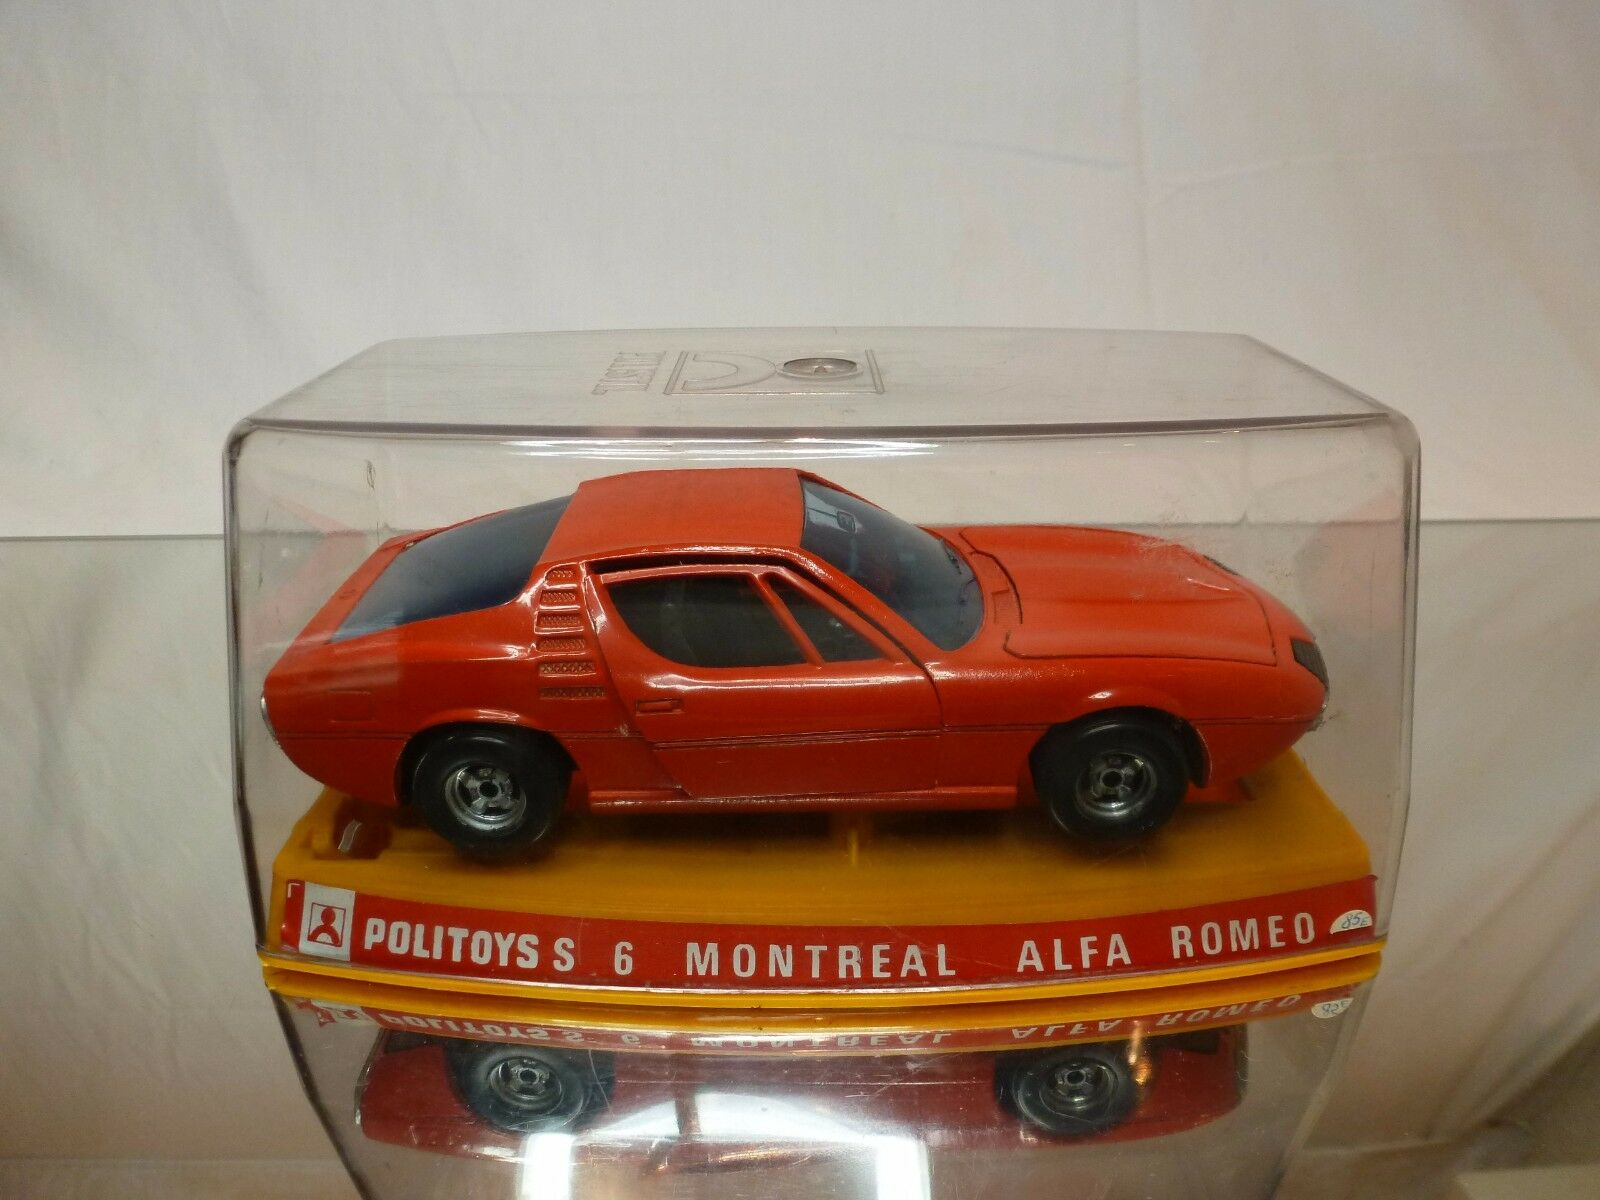 POLITOYS S6 ALFA ROMEO MONTREAL - rojo 1 25 - GOOD CONDITION IN BOX